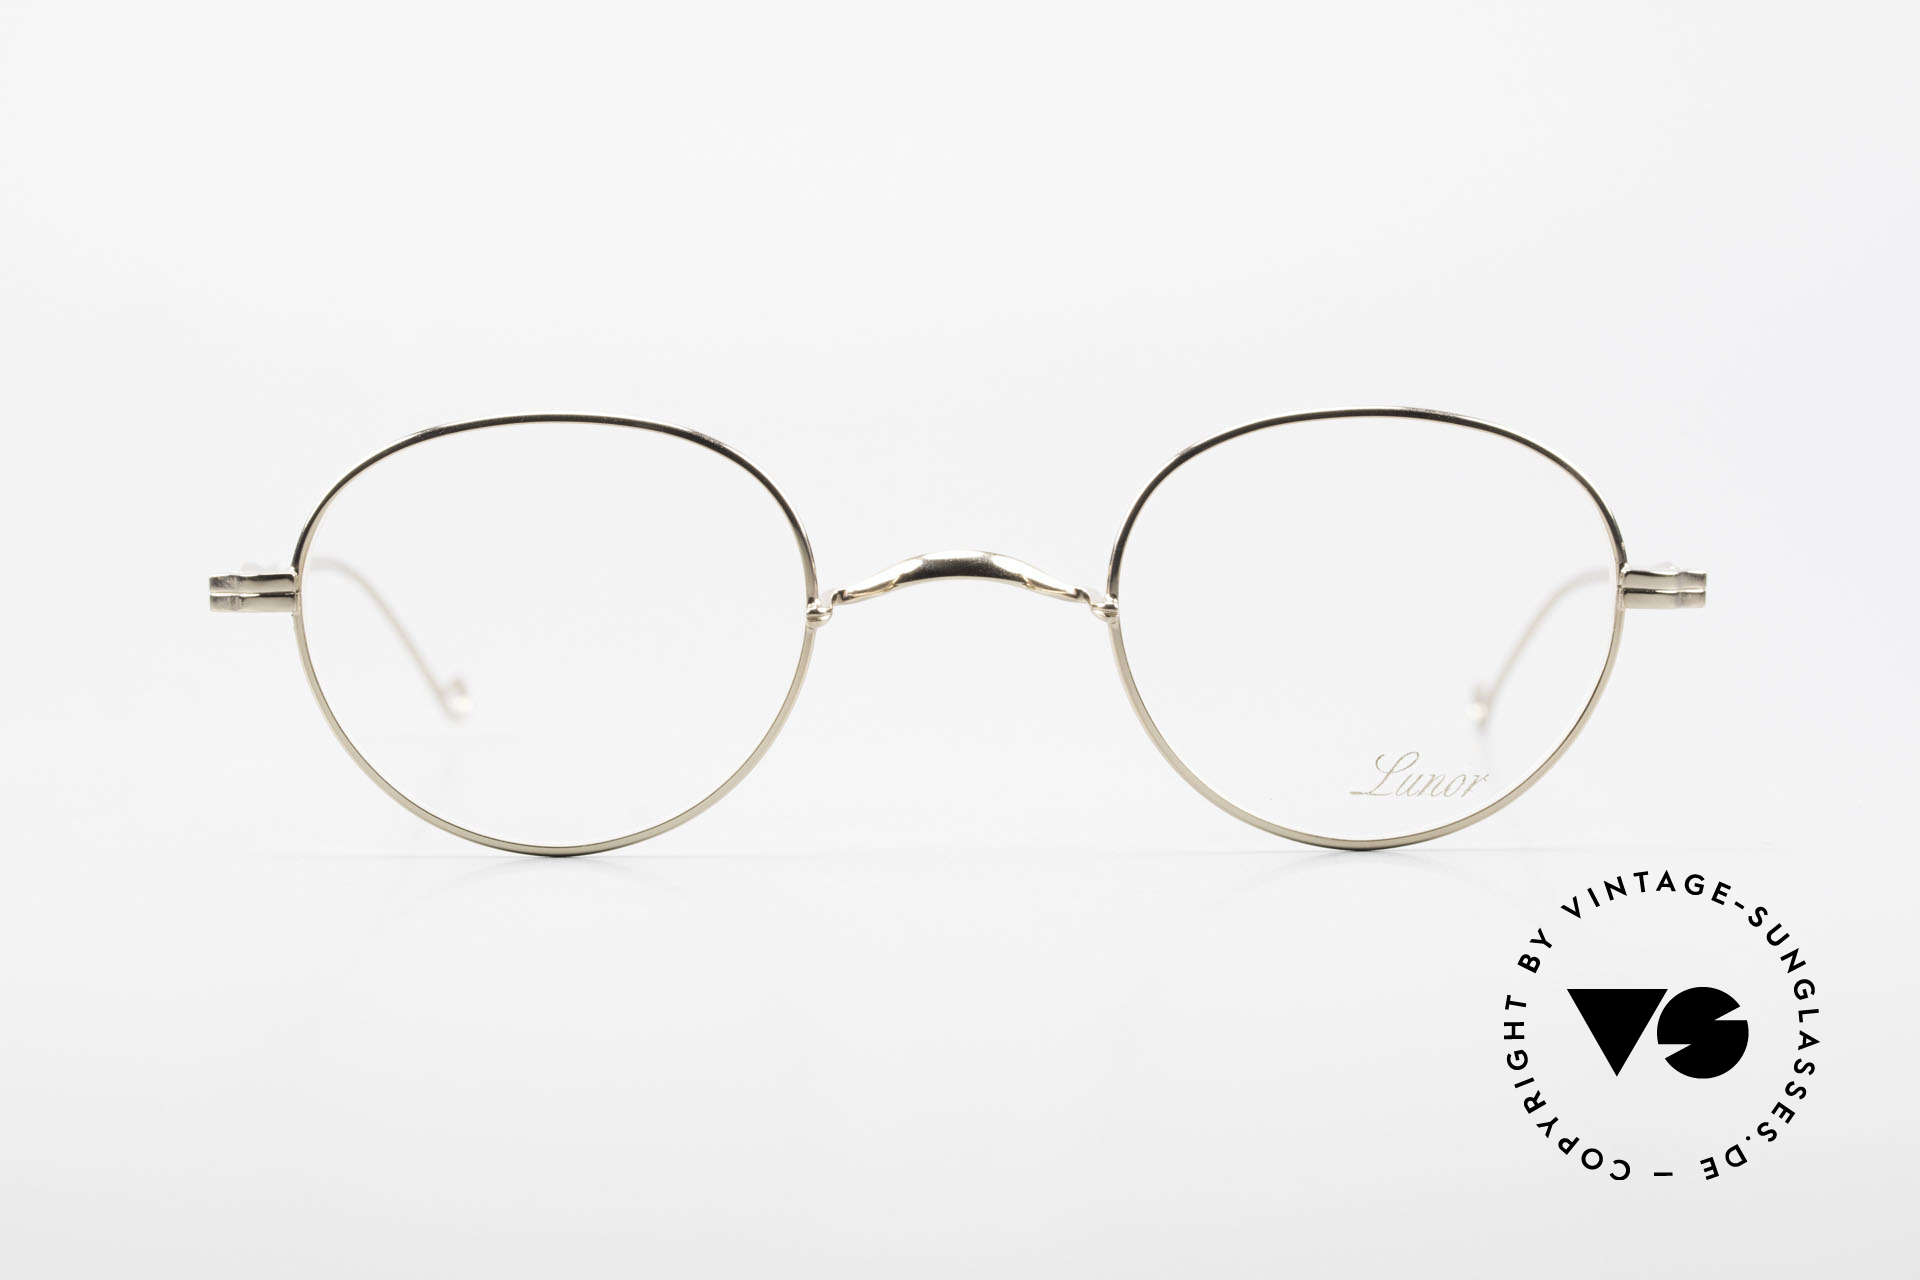 Lunor II 22 Lunor Eyeglasses Gold Plated, full rim metal frame coated with a protection lacquer, Made for Men and Women